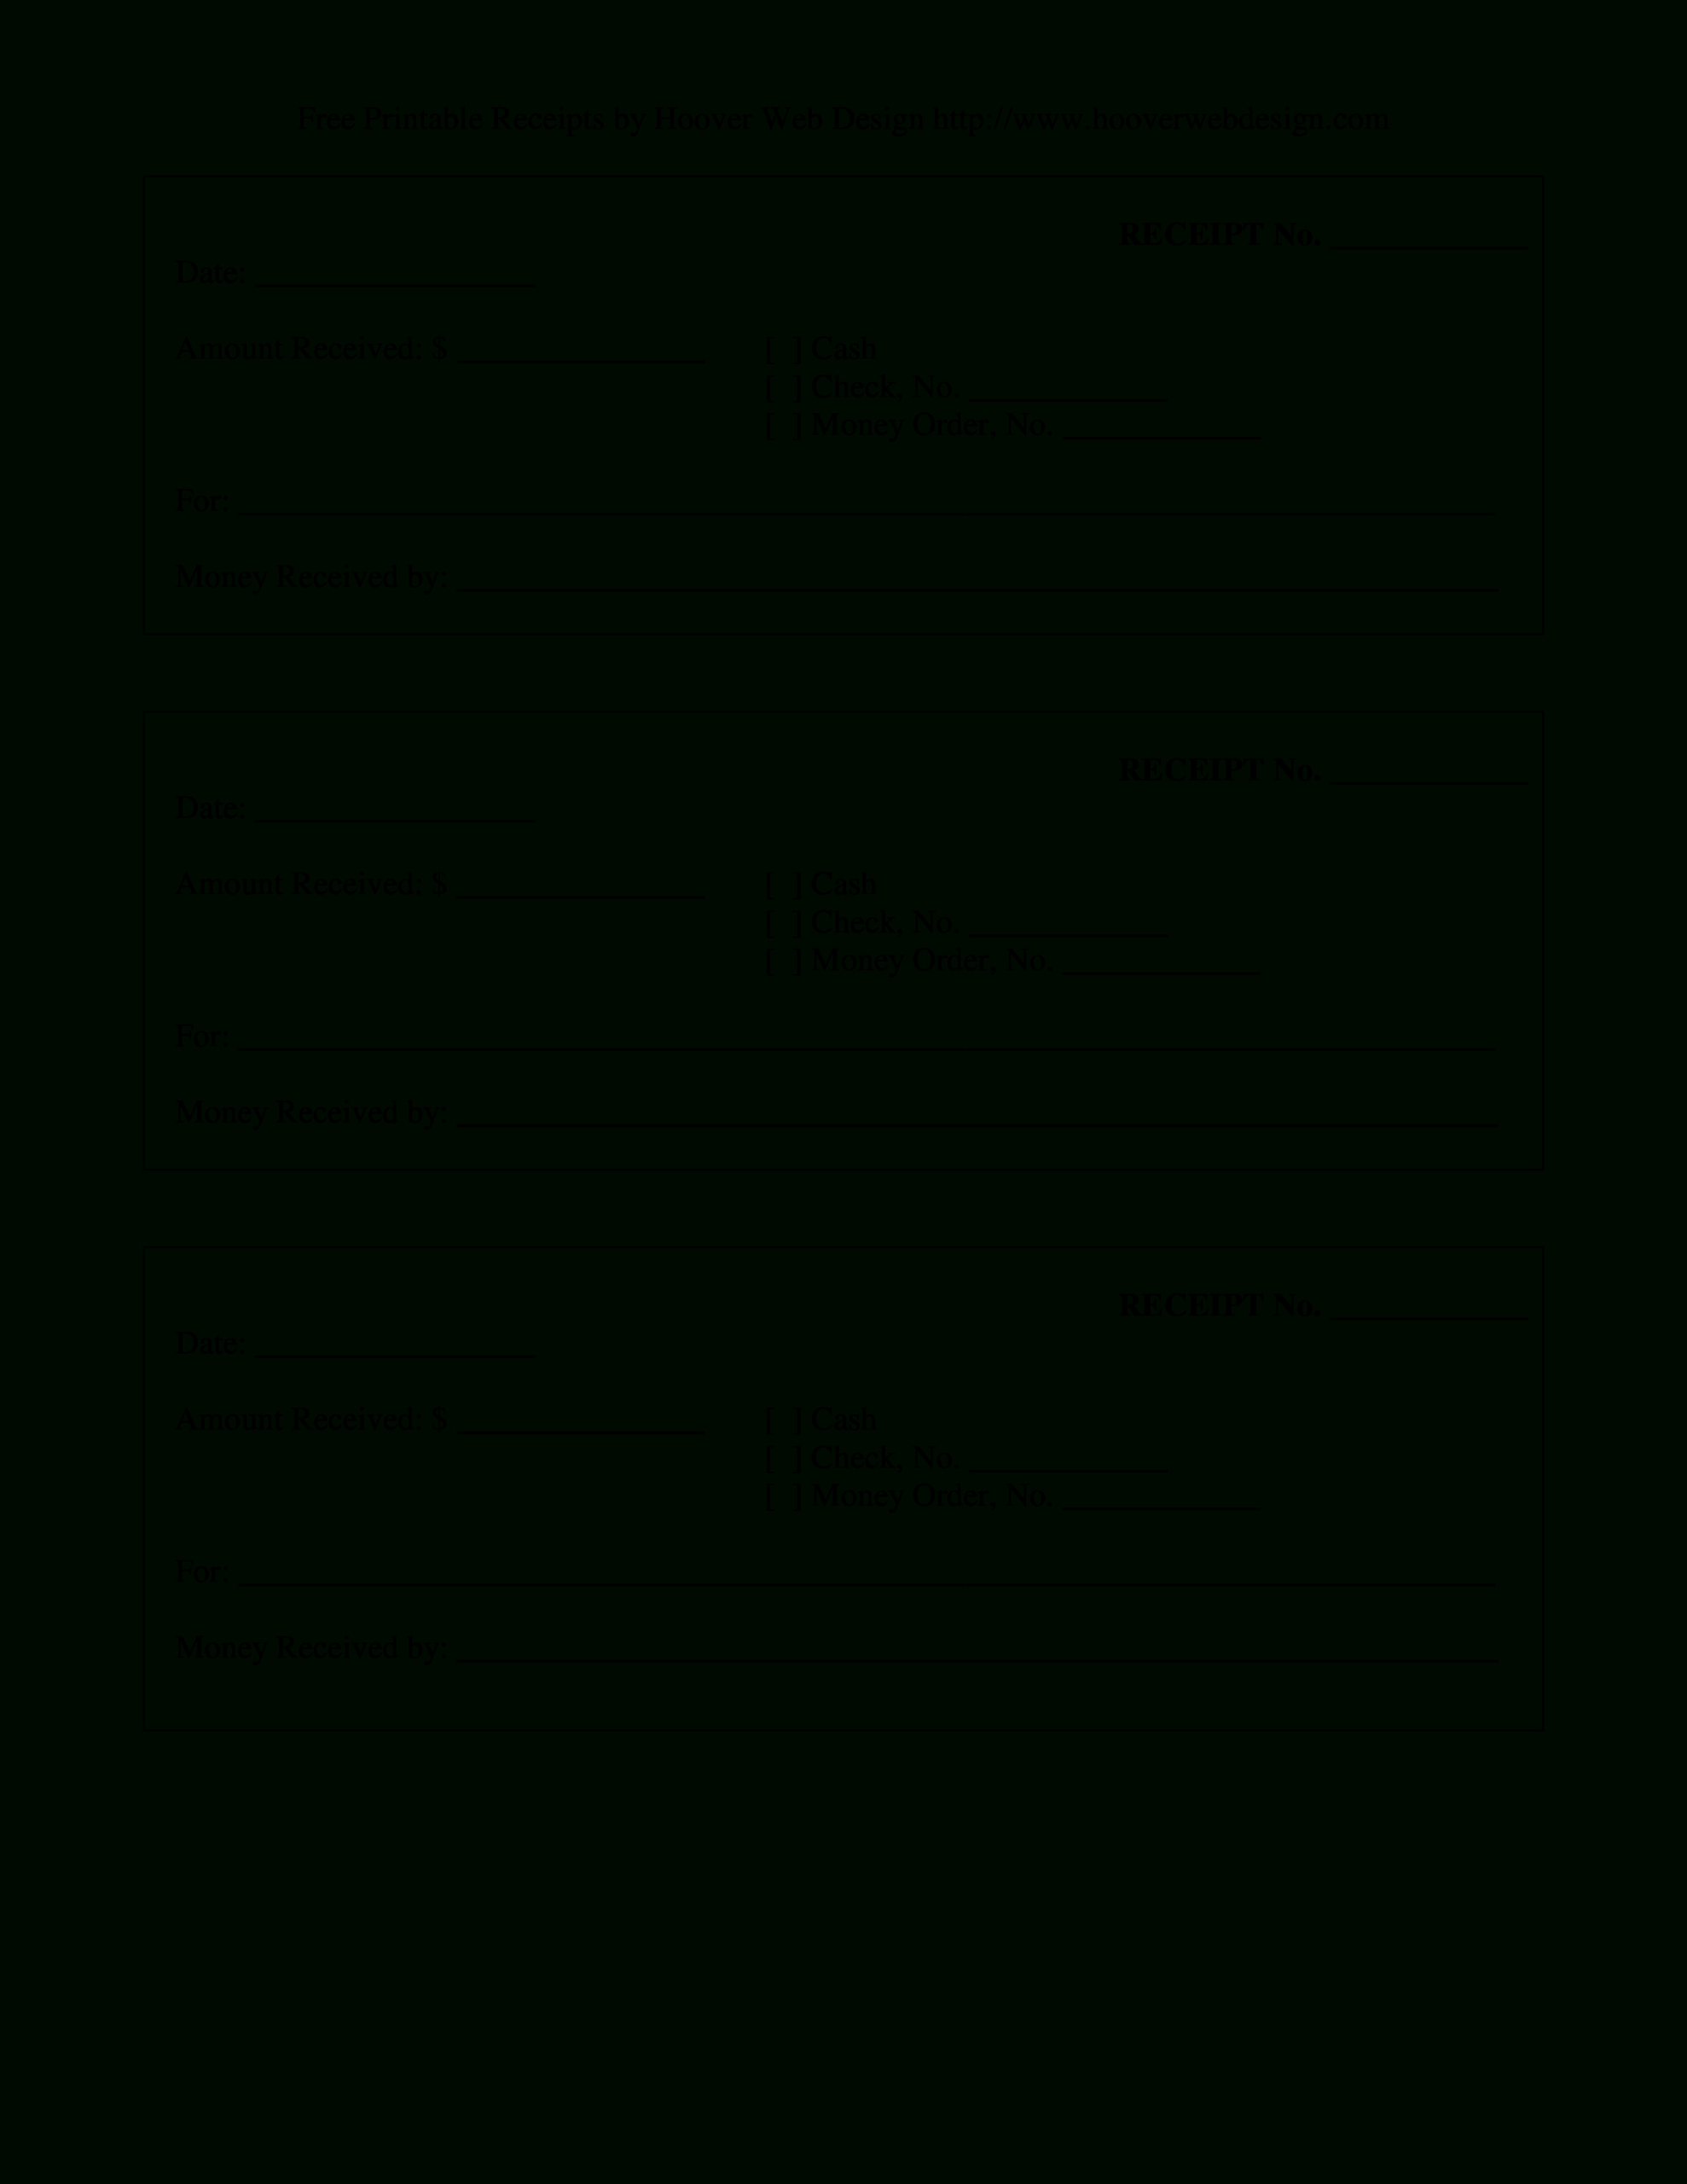 Cash Receipt Blank | Templates At Allbusinesstemplates With Blank Money Order Template